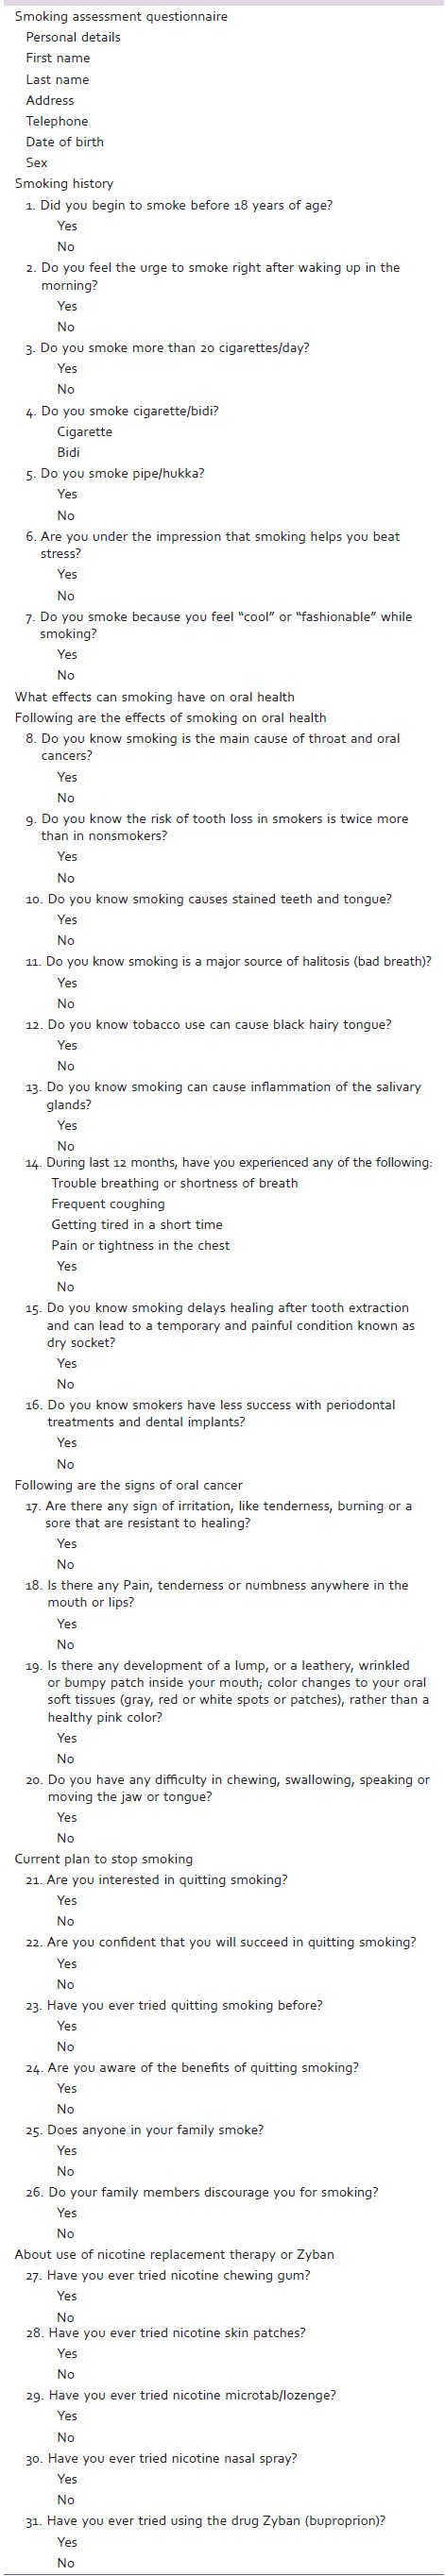 Ill effects of smoking on general and oral health: Awareness